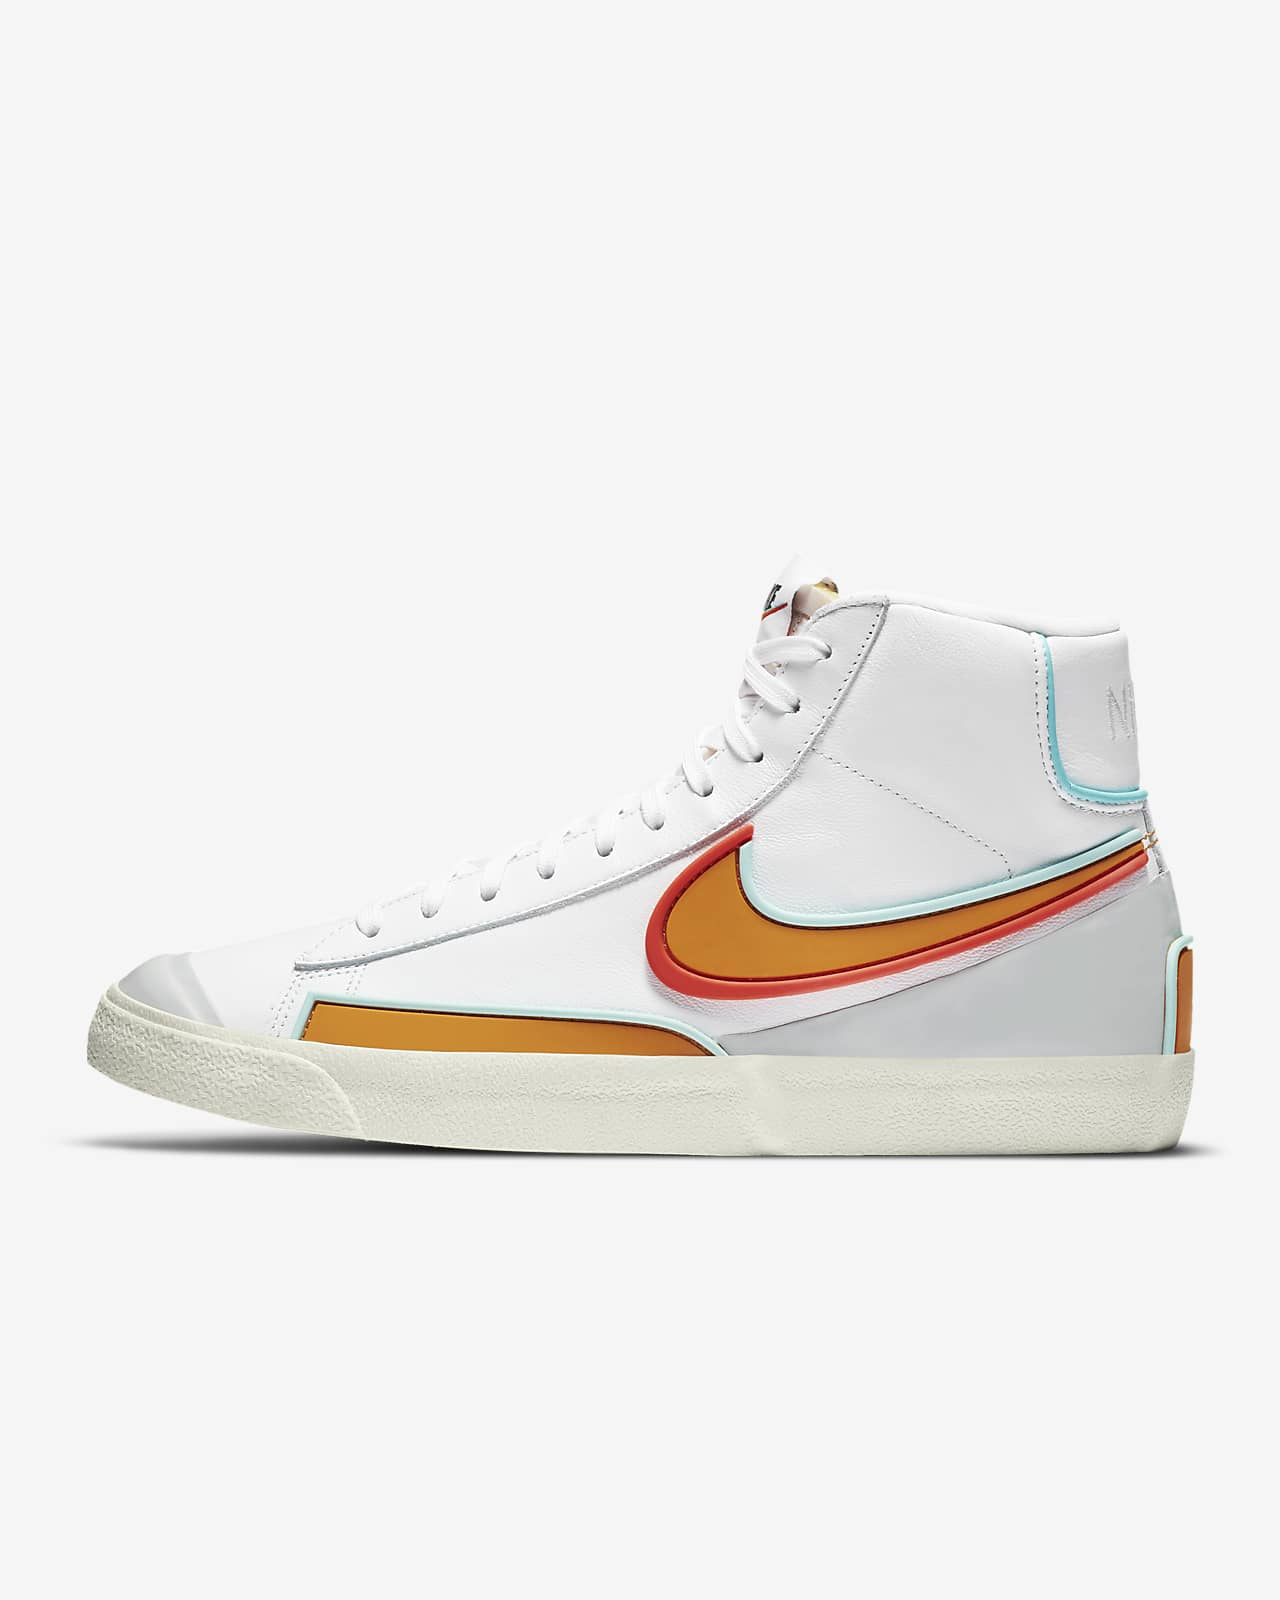 Chaussure Nike Blazer Mid '77 Infinite pour Homme